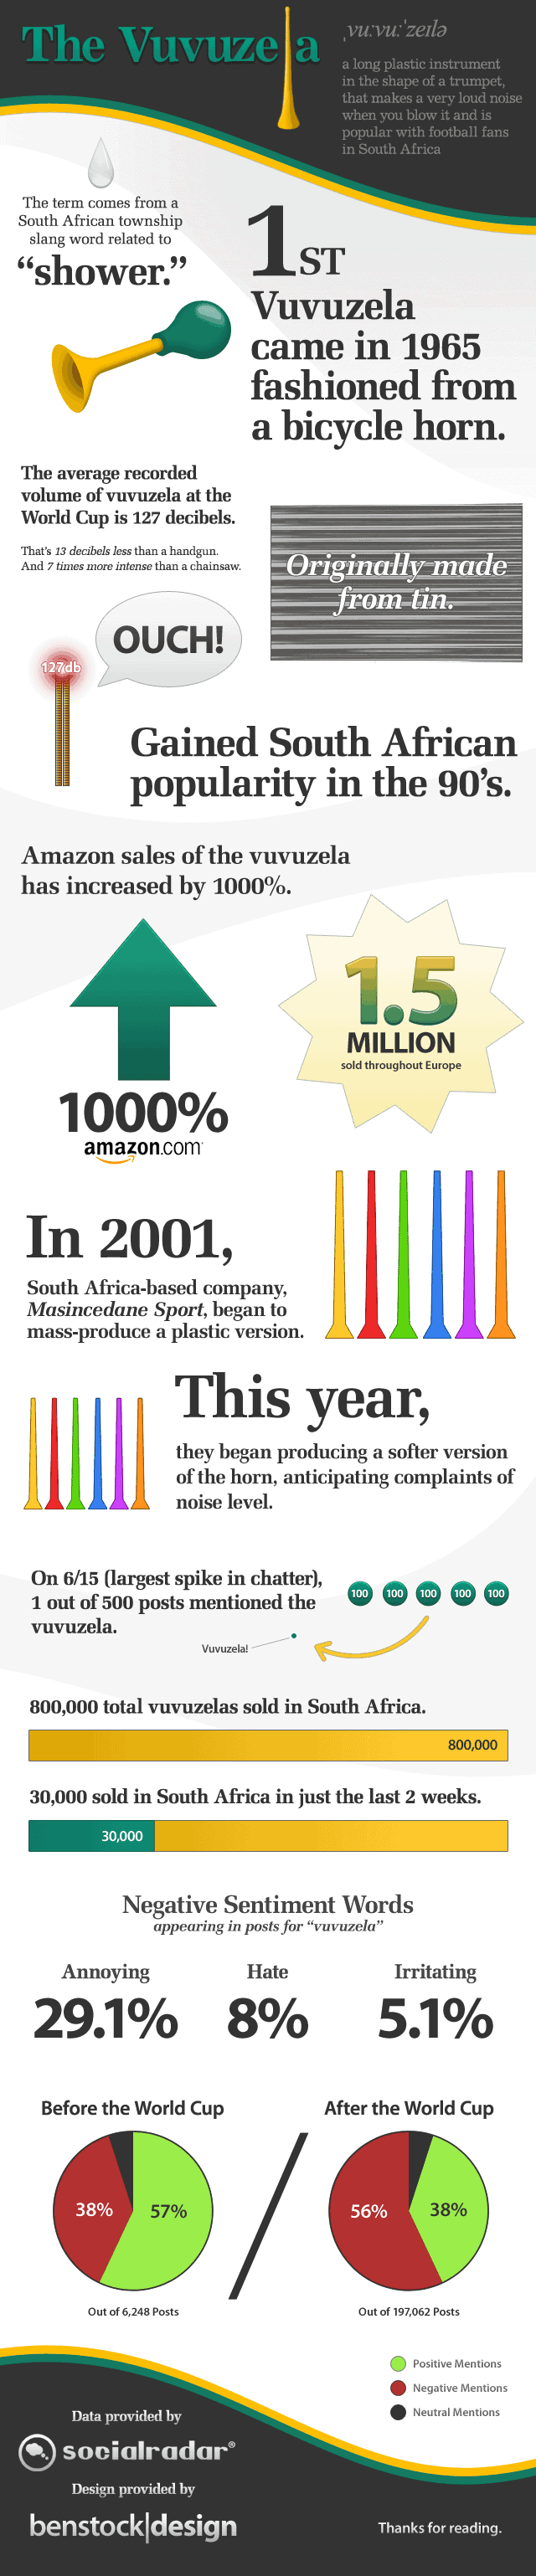 History and facts about the vuvuzela, an instrument used heavily in the South Afican World Cup